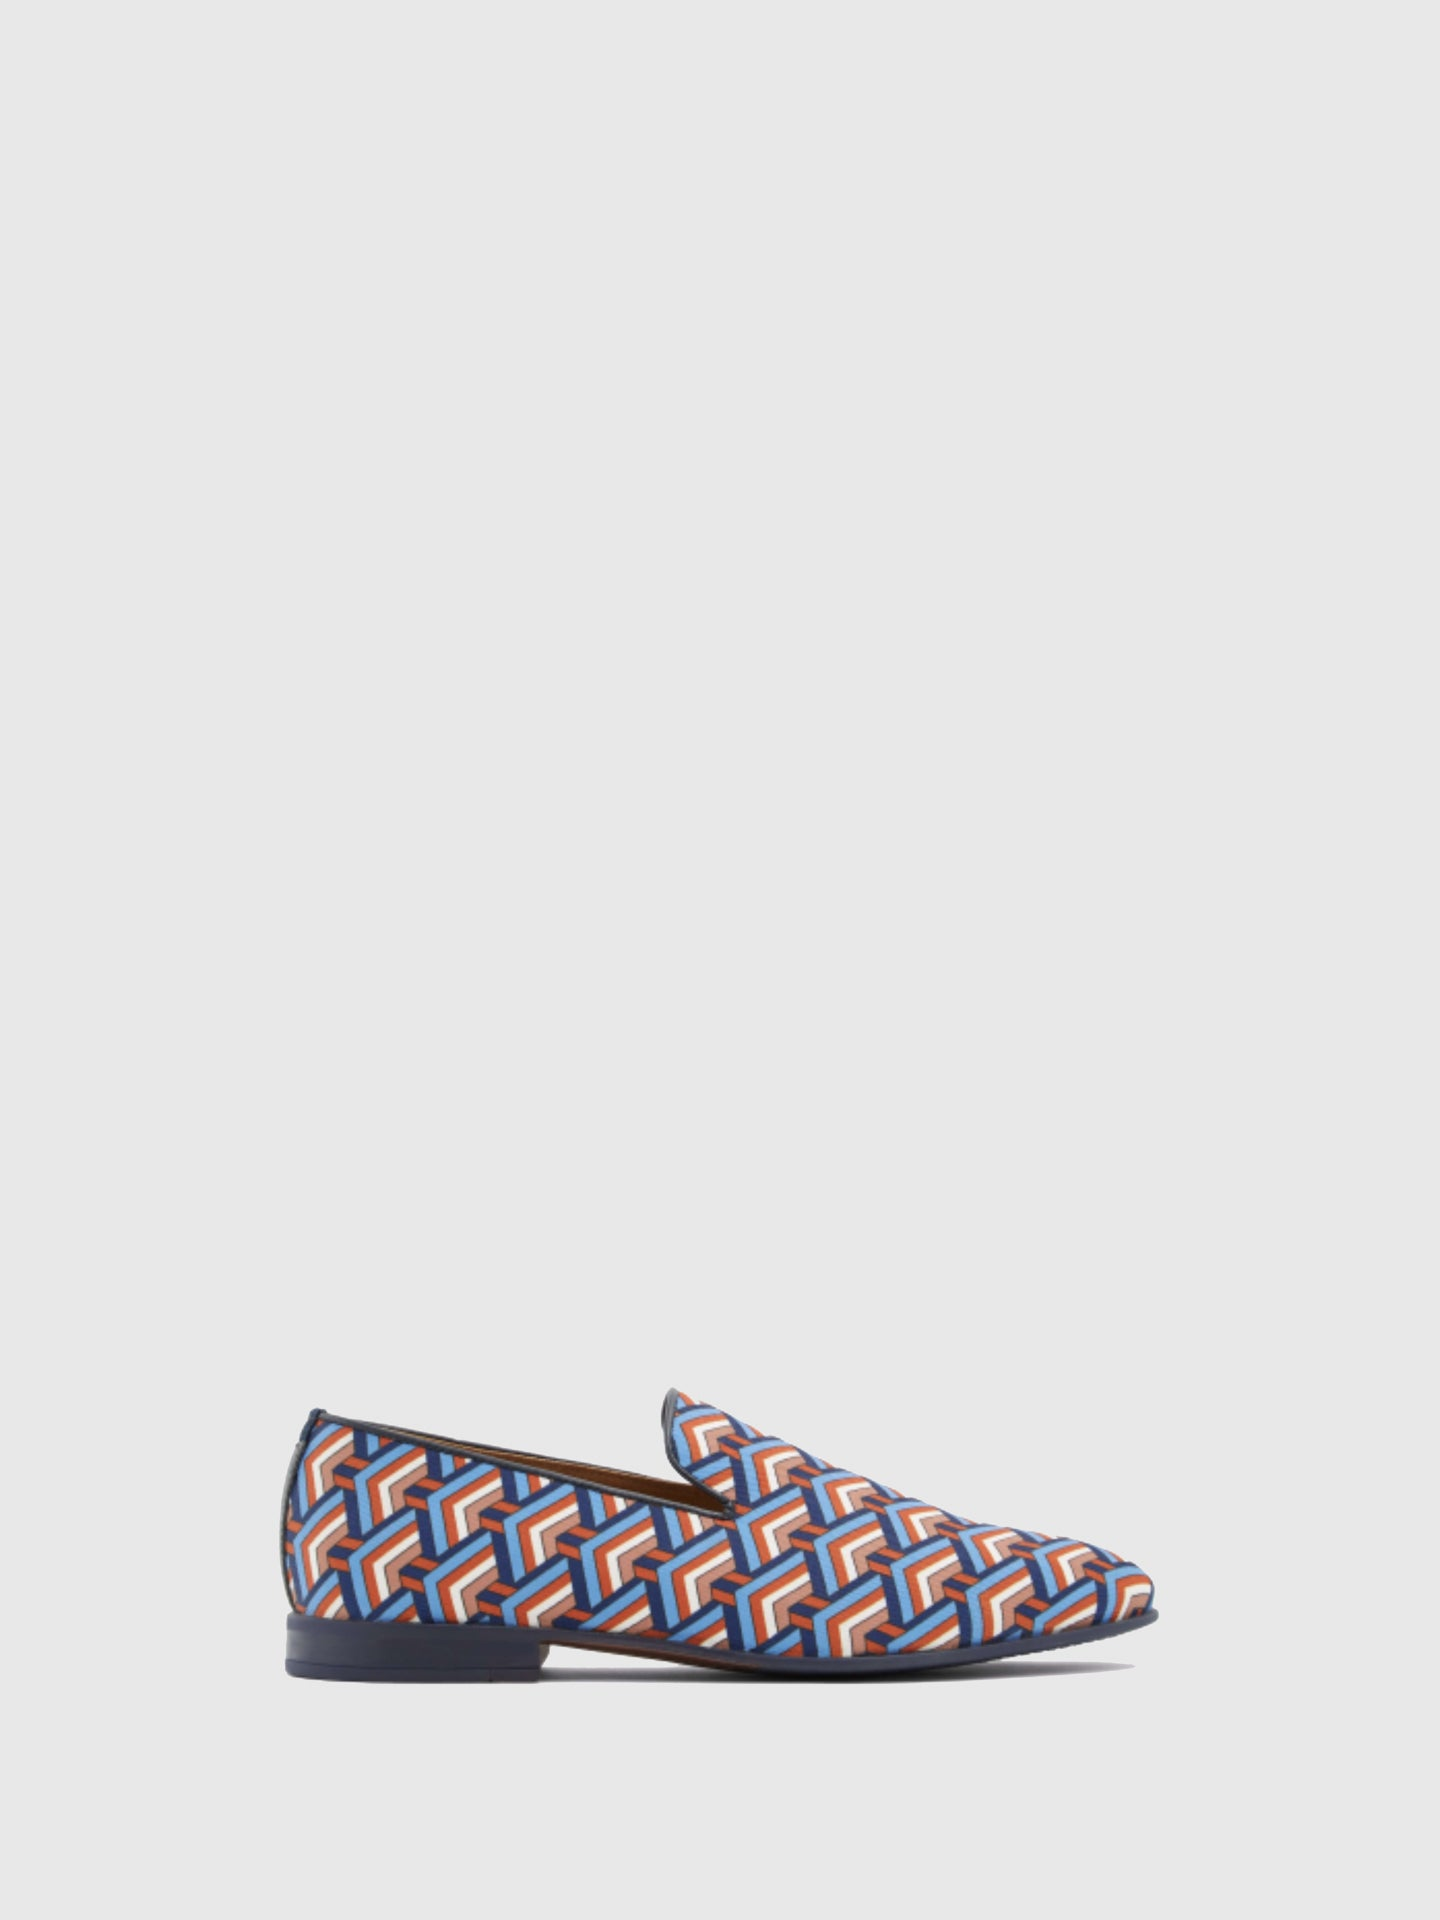 Aldo Multicolor Loafers Shoes